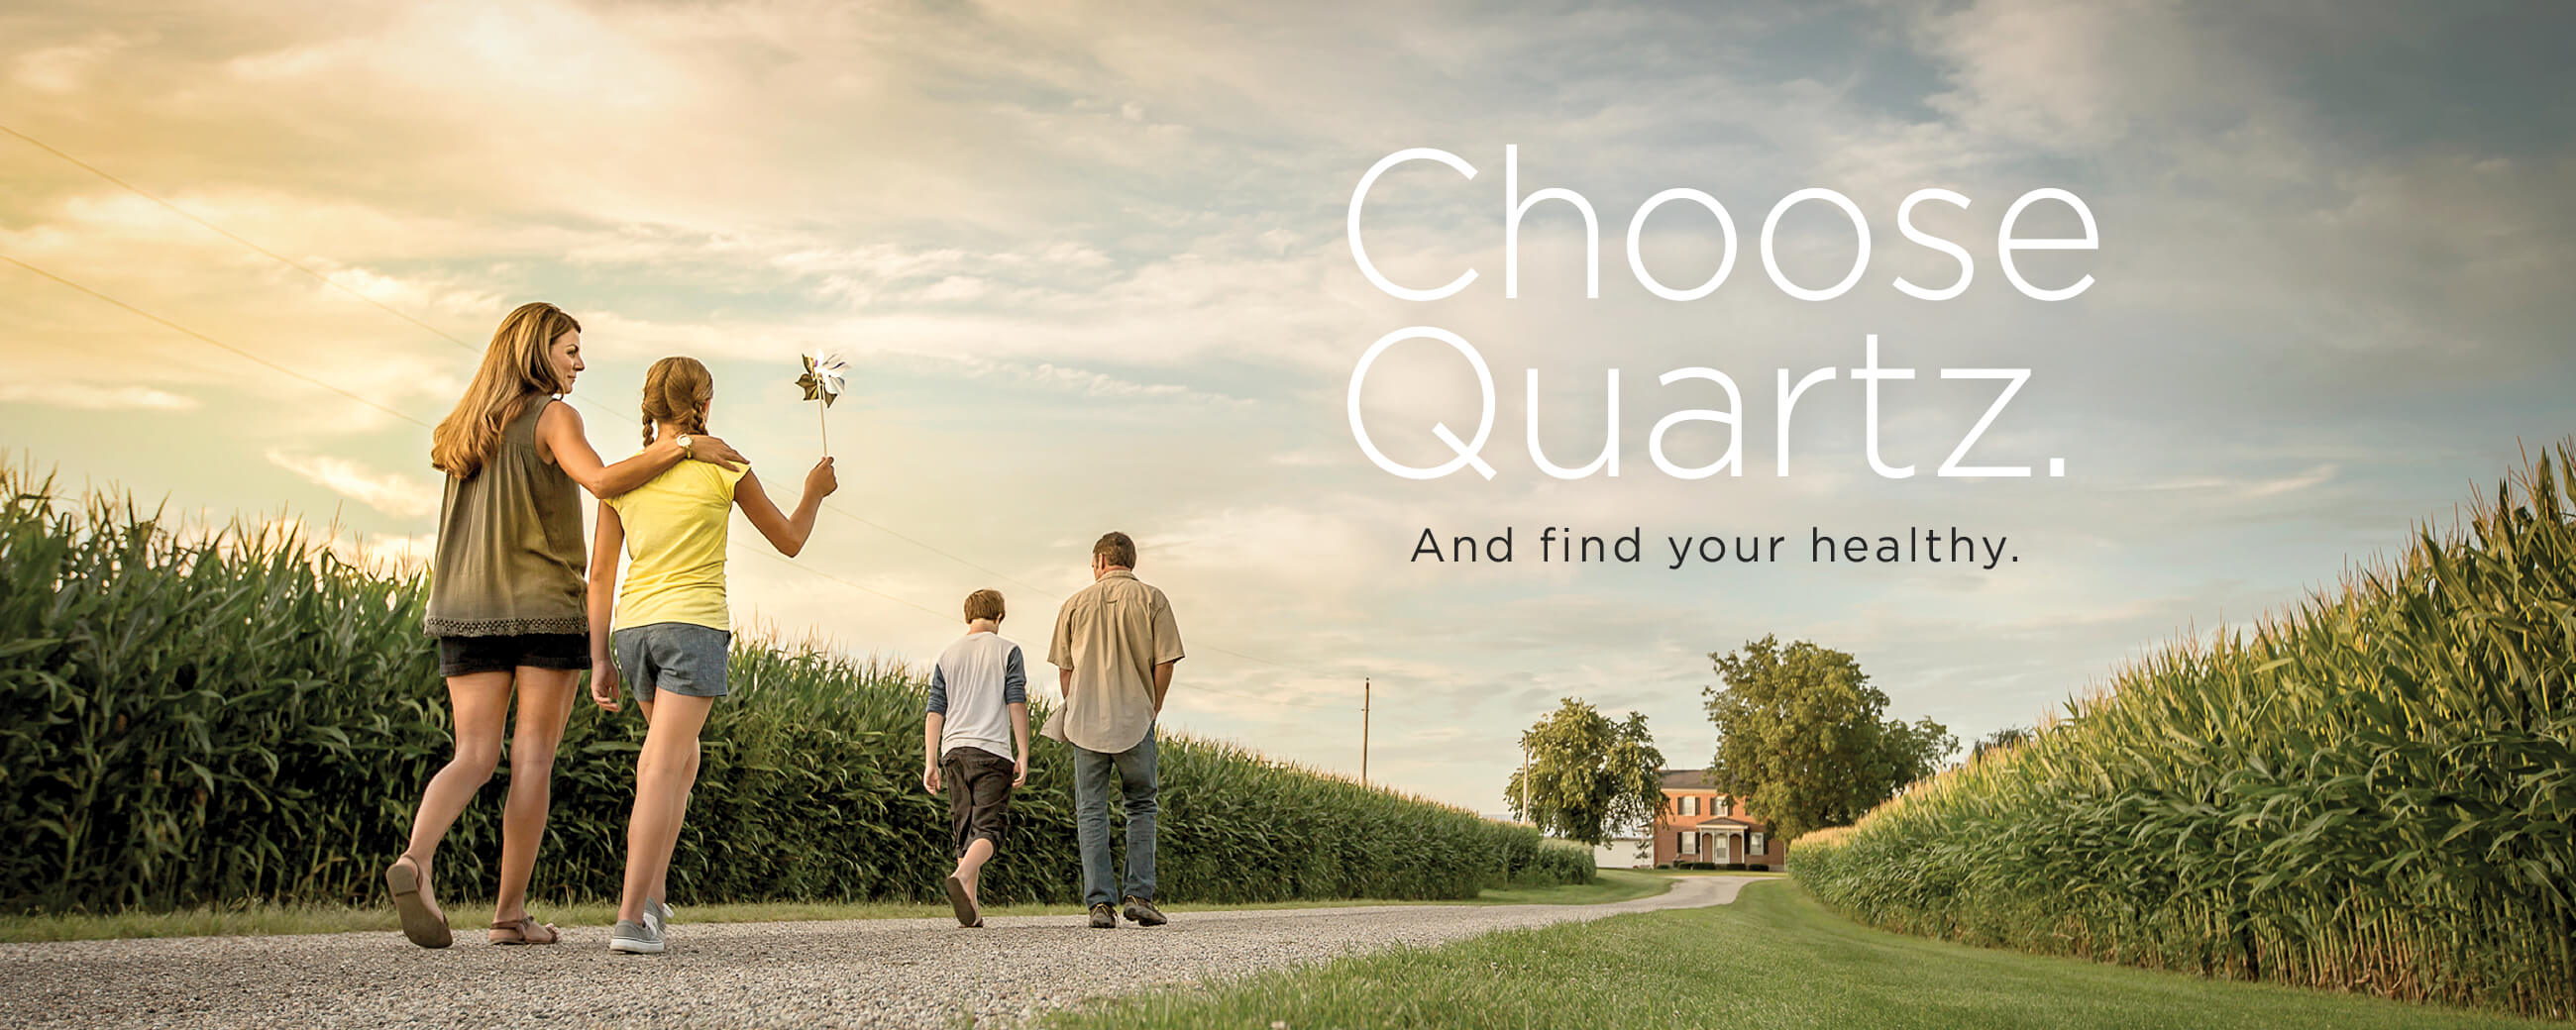 Choose Quartz. And find your healthy.